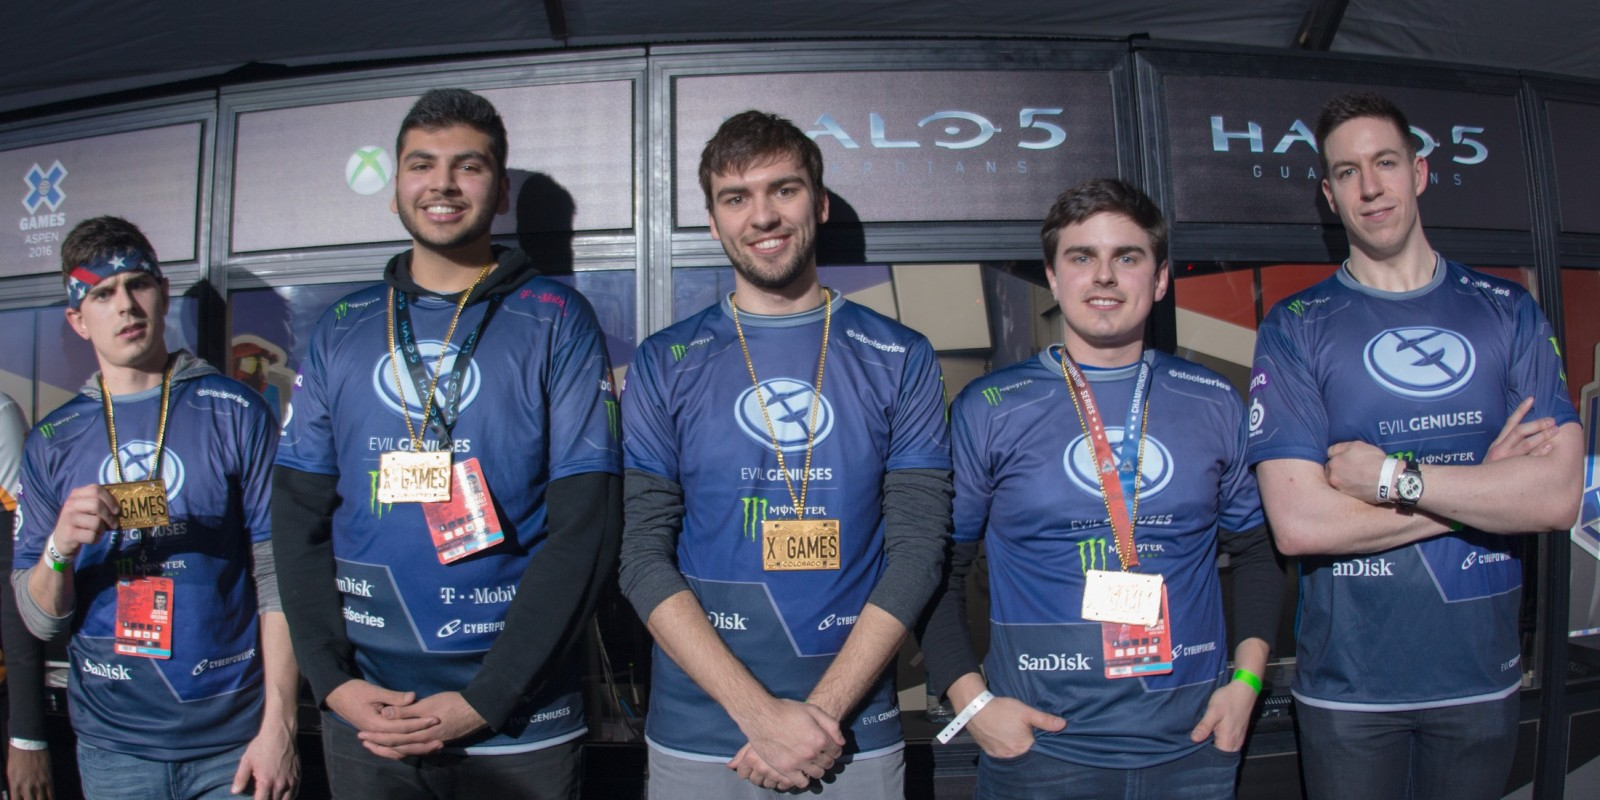 Evil Geniuses Halo at the 2016 Winter X Games in Aspen